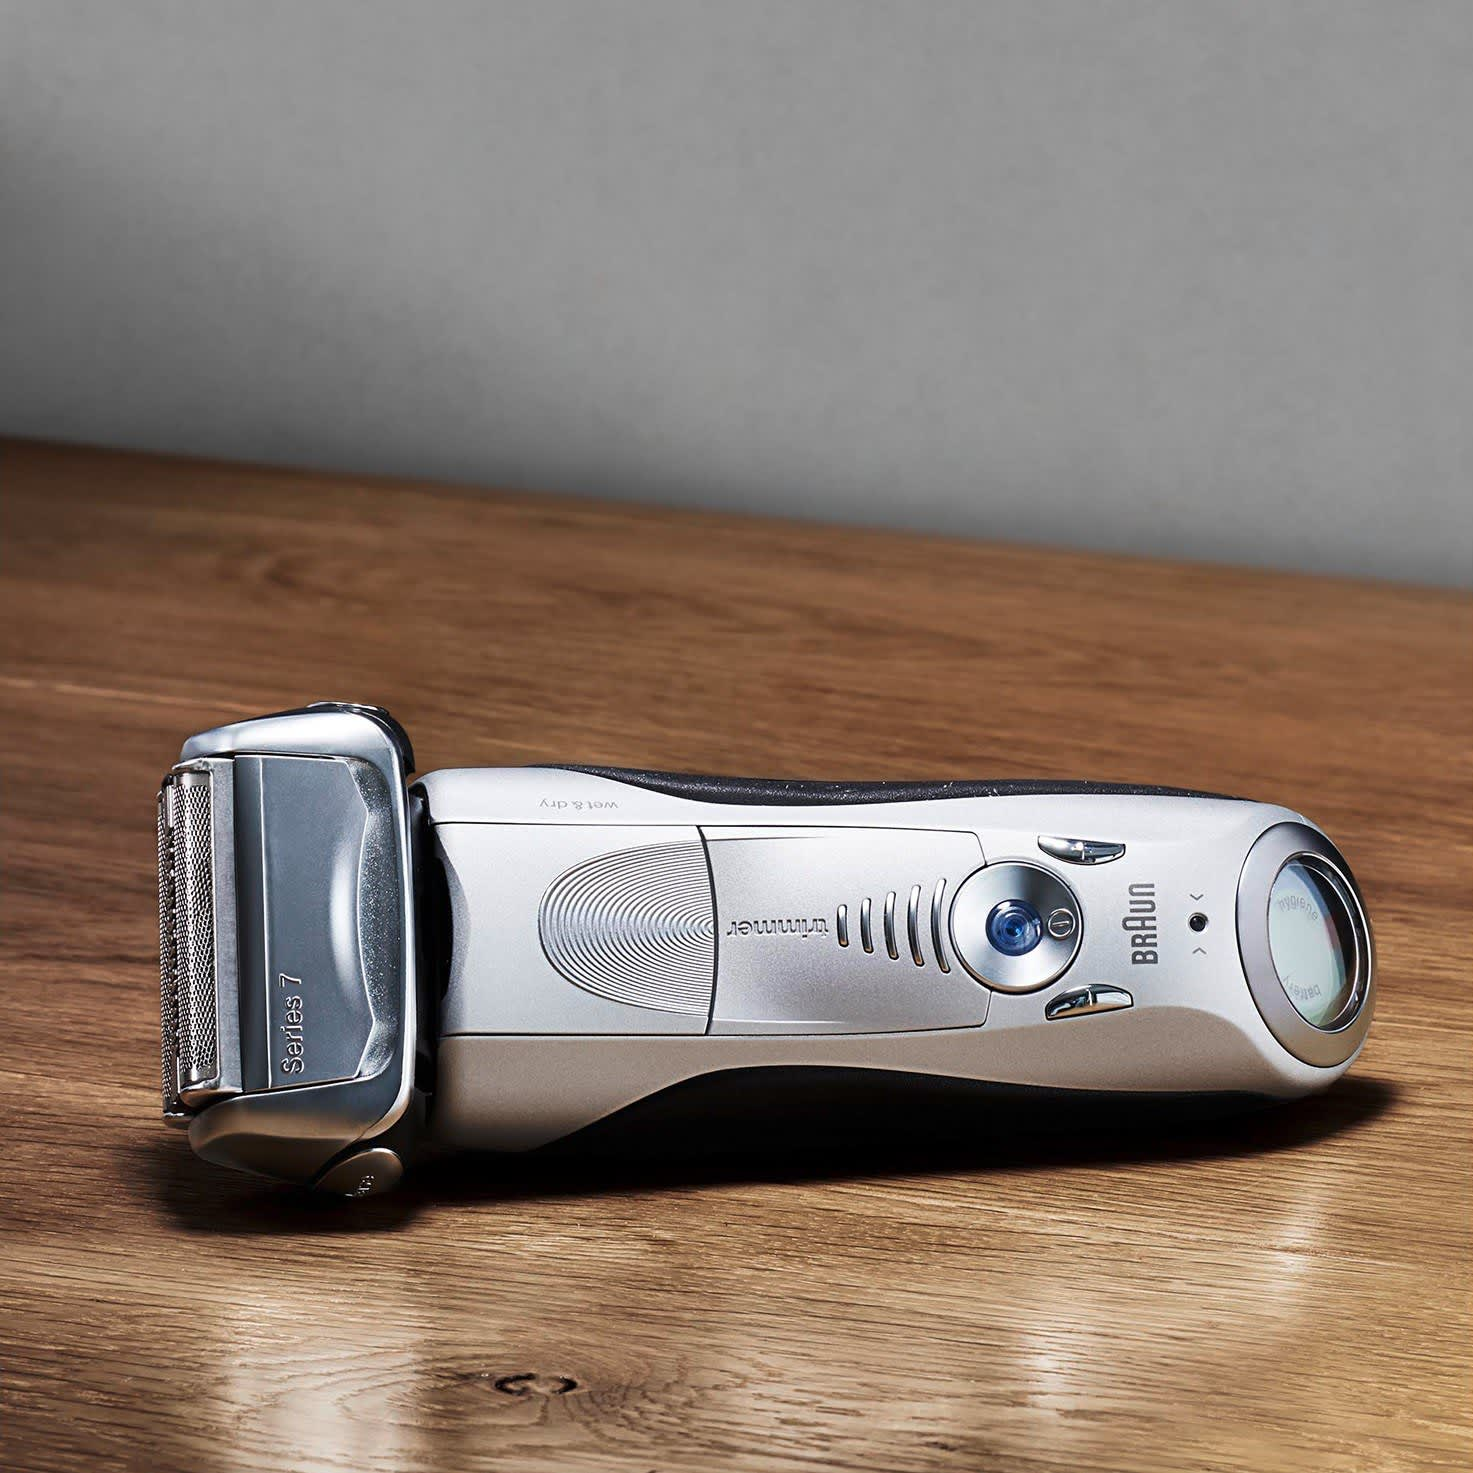 Braun Series 7 silver electric shaver lifestyle